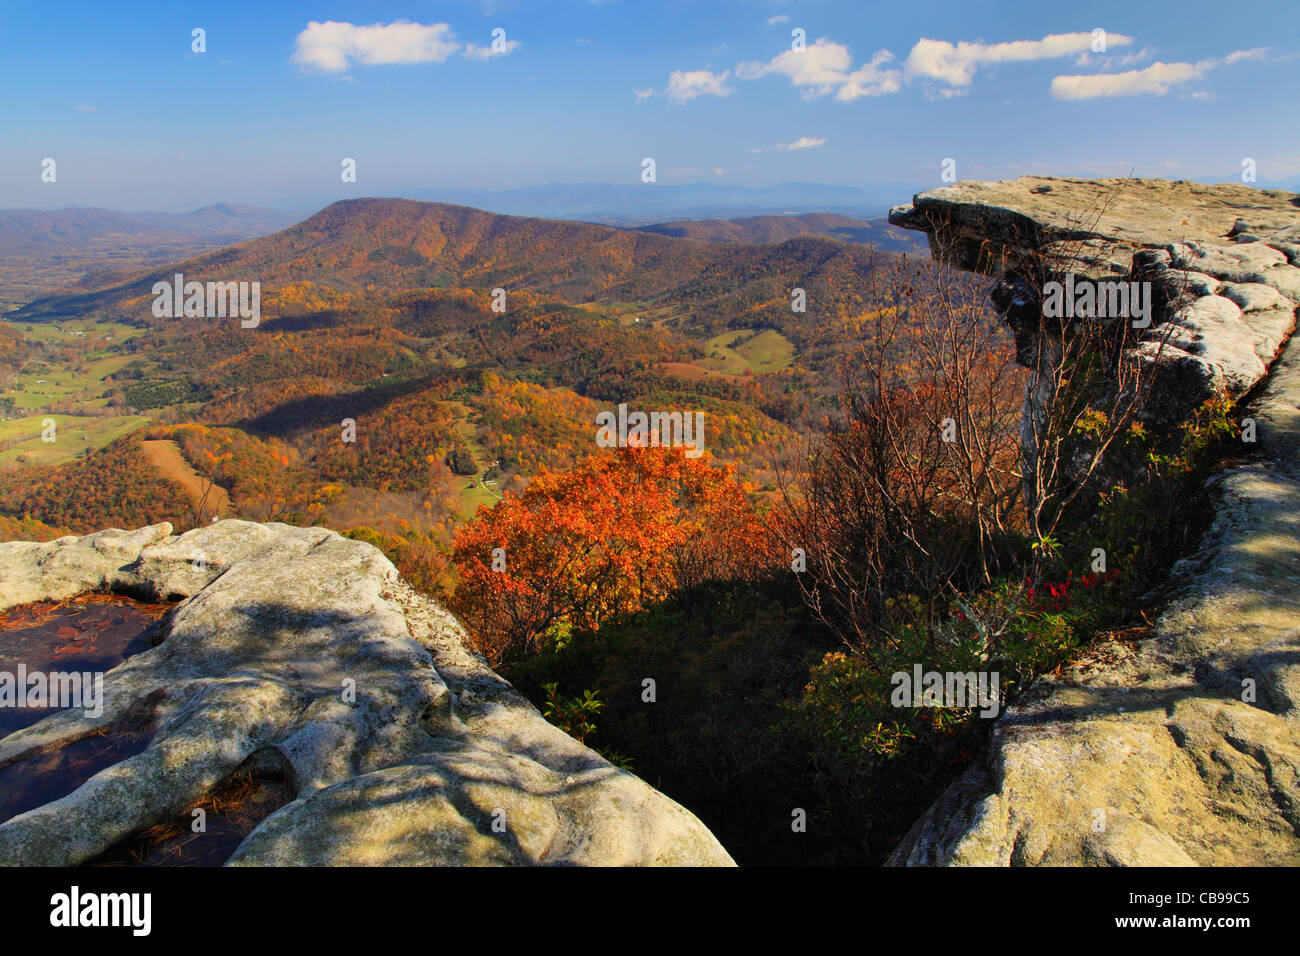 McAfee Knob, Appalachian Trail, Roanoke, Virginia, USA Stock Photo